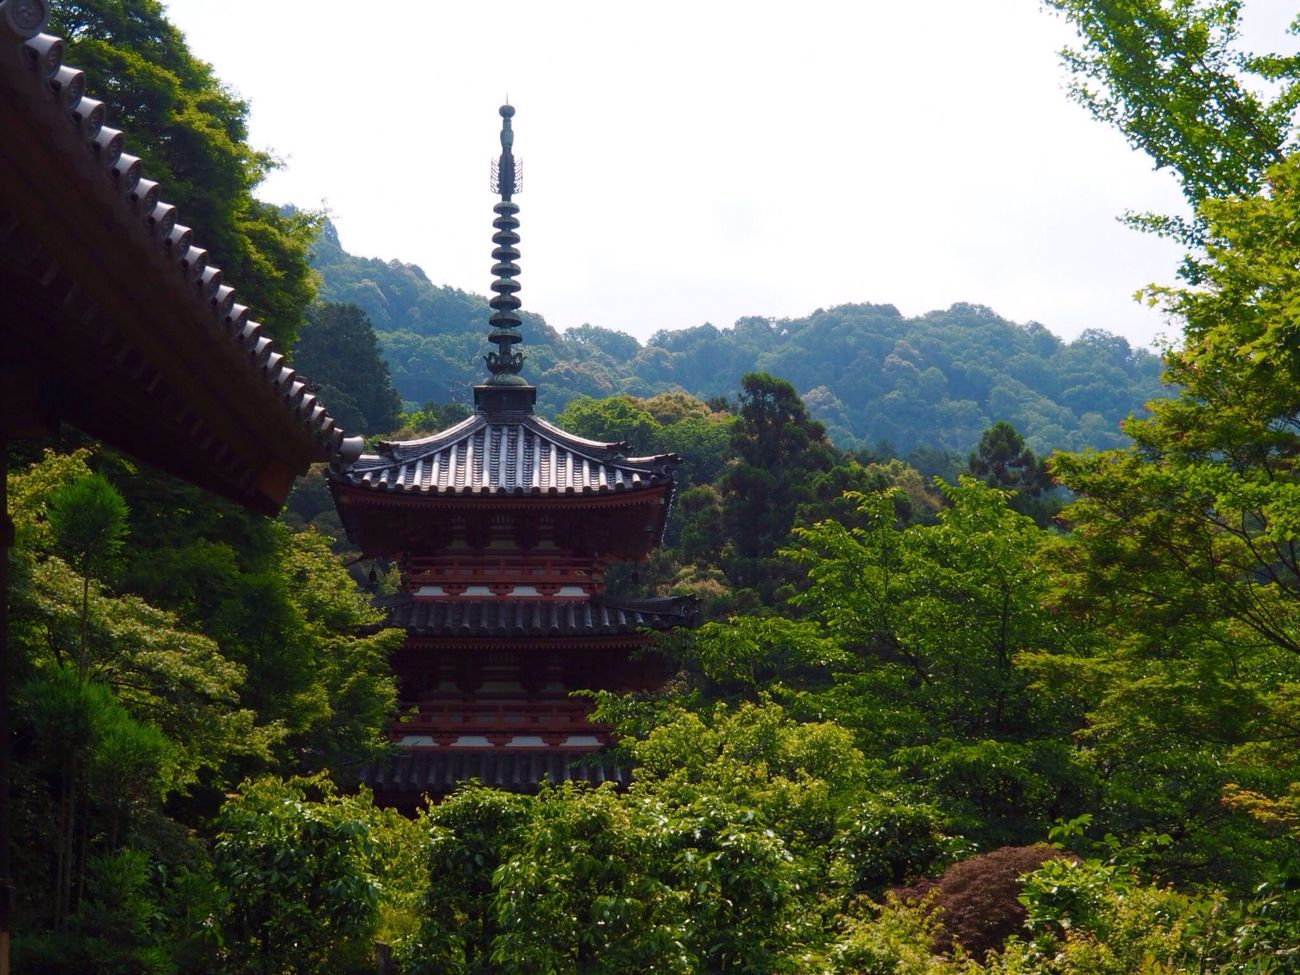 Kyoto Japan Uji Mimurotoji Temple Shrine Tree Architecture No People Nature Beauty In Nature Mountain Day Green Color Outdoors Sky Japanese Style Olympus PEN-F 京都 日本 宇治 三室戸寺